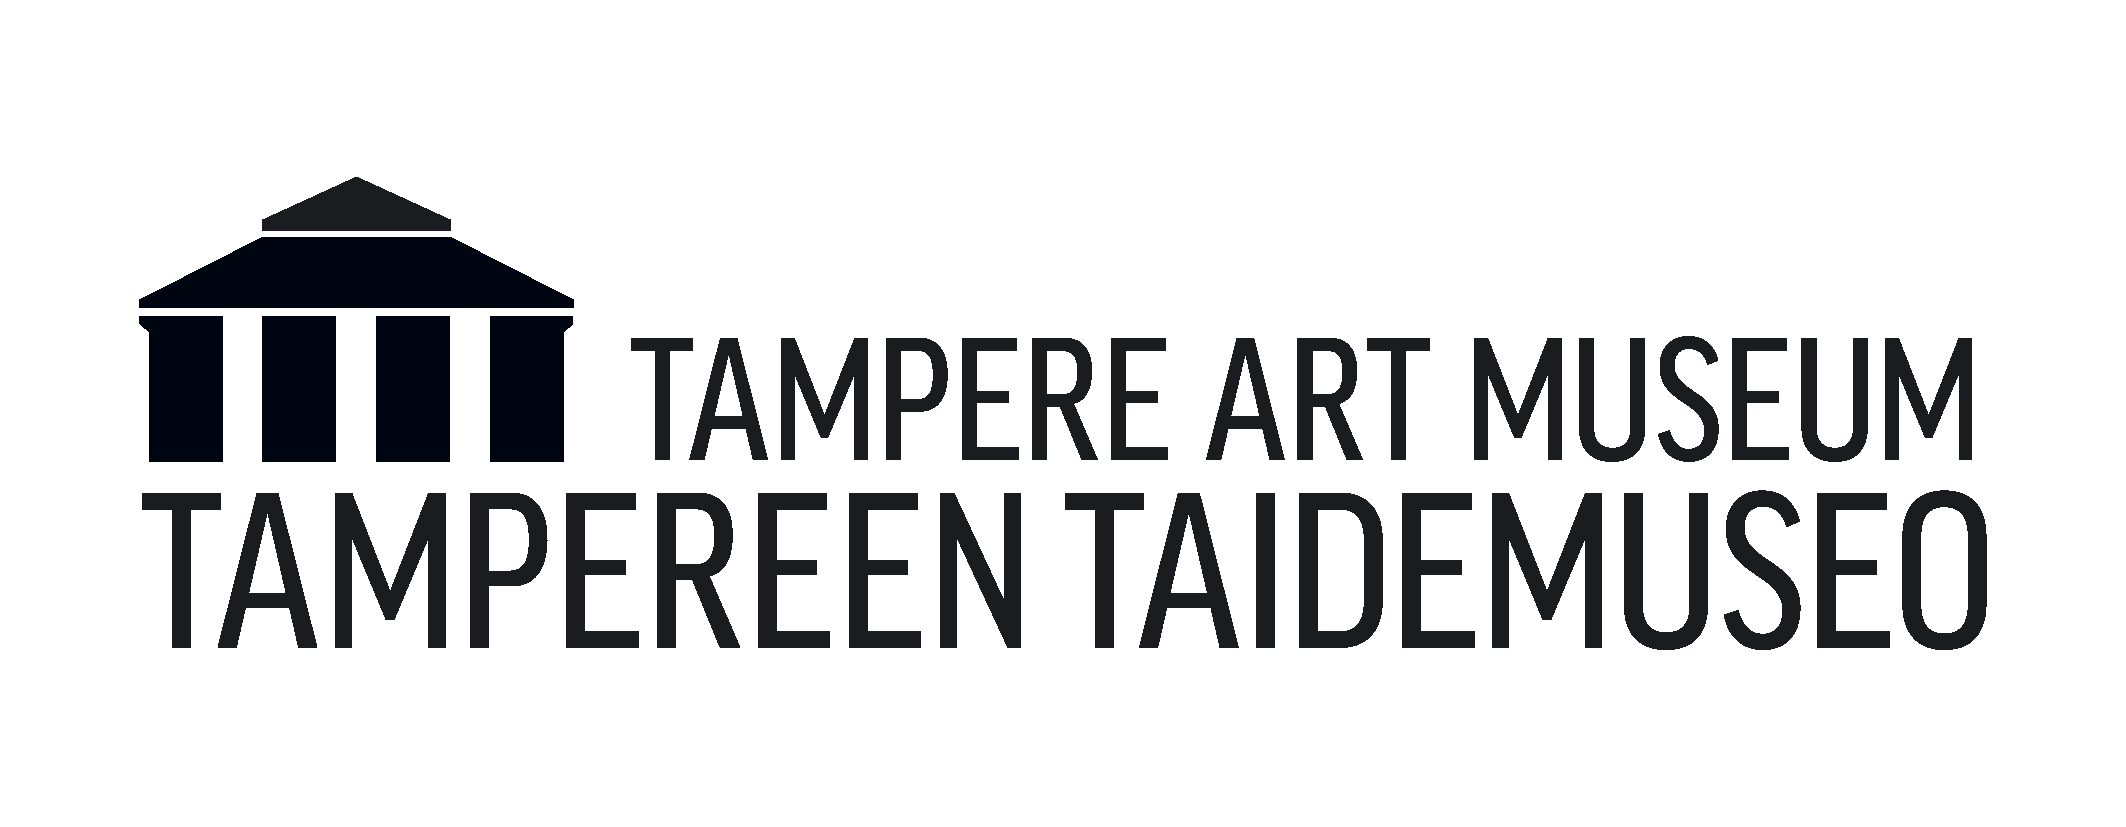 Tampereen patsaat